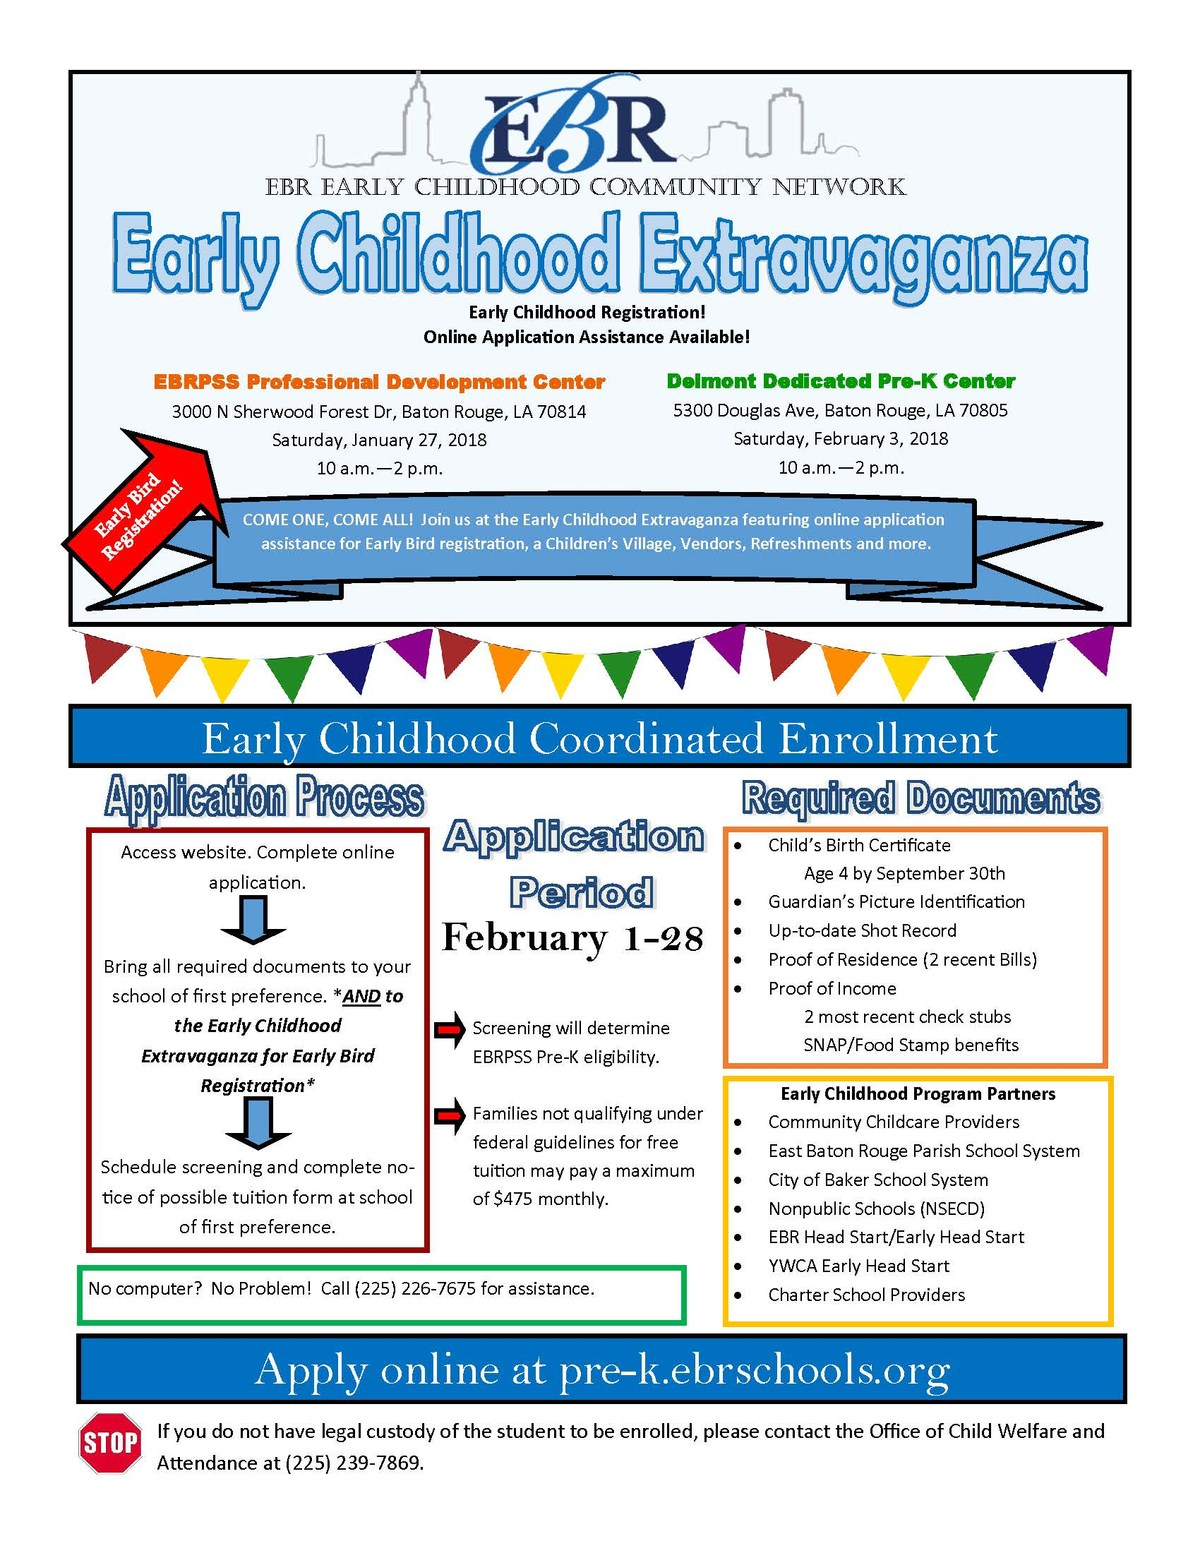 Early childhood extravaganza 2018 miscellaneous city of baker early childhood extravaganza 2018 xflitez Gallery